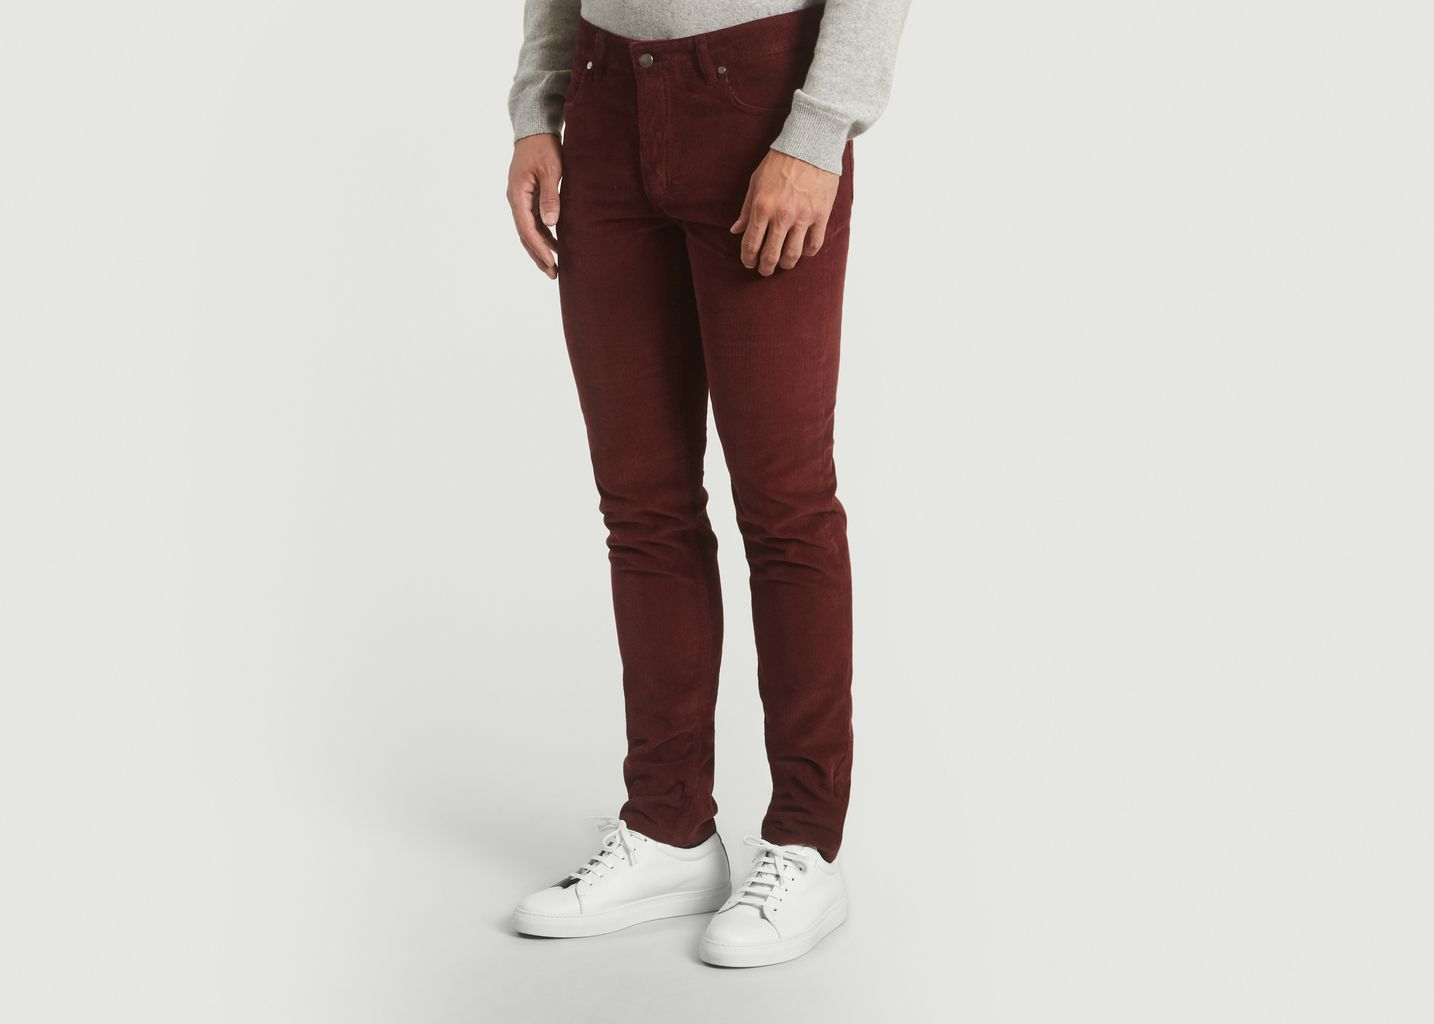 Pantalon Velours - L'Exception Paris